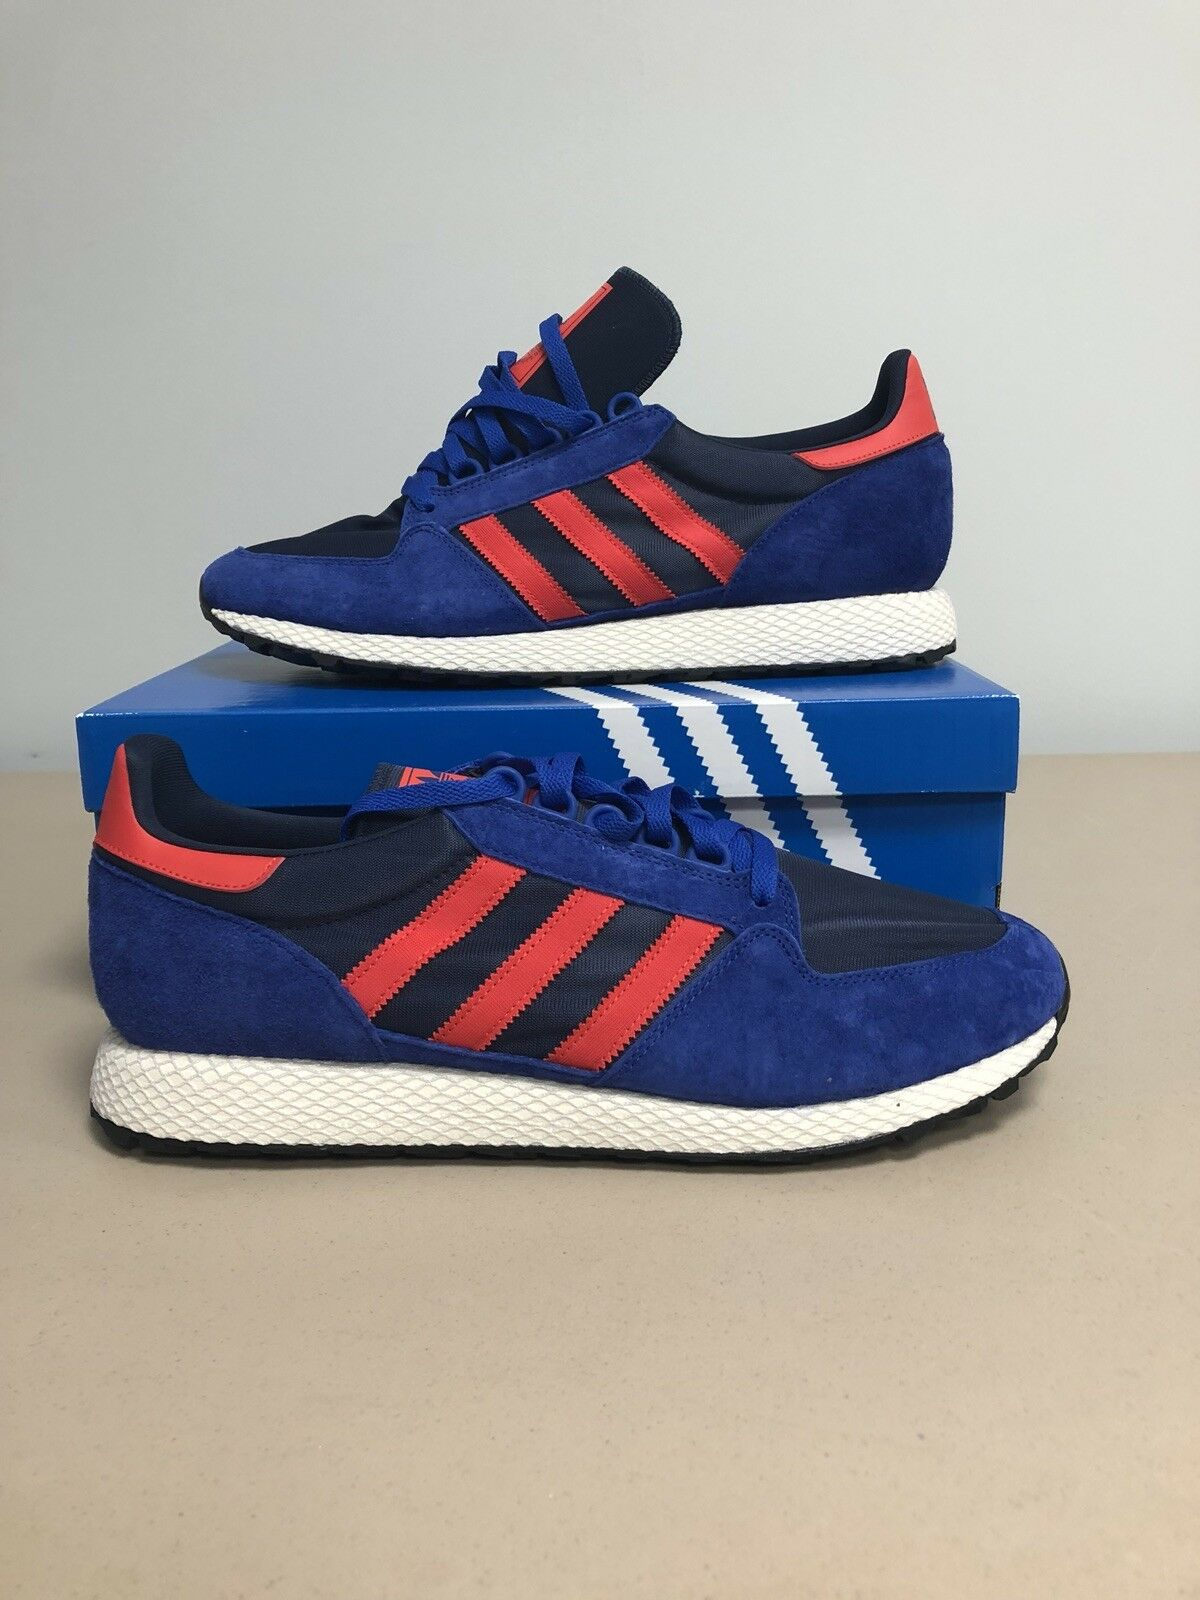 Adidas Forest Grove Men's shoes Powder bluee Hi- Res Red Collegiate Navy B38002